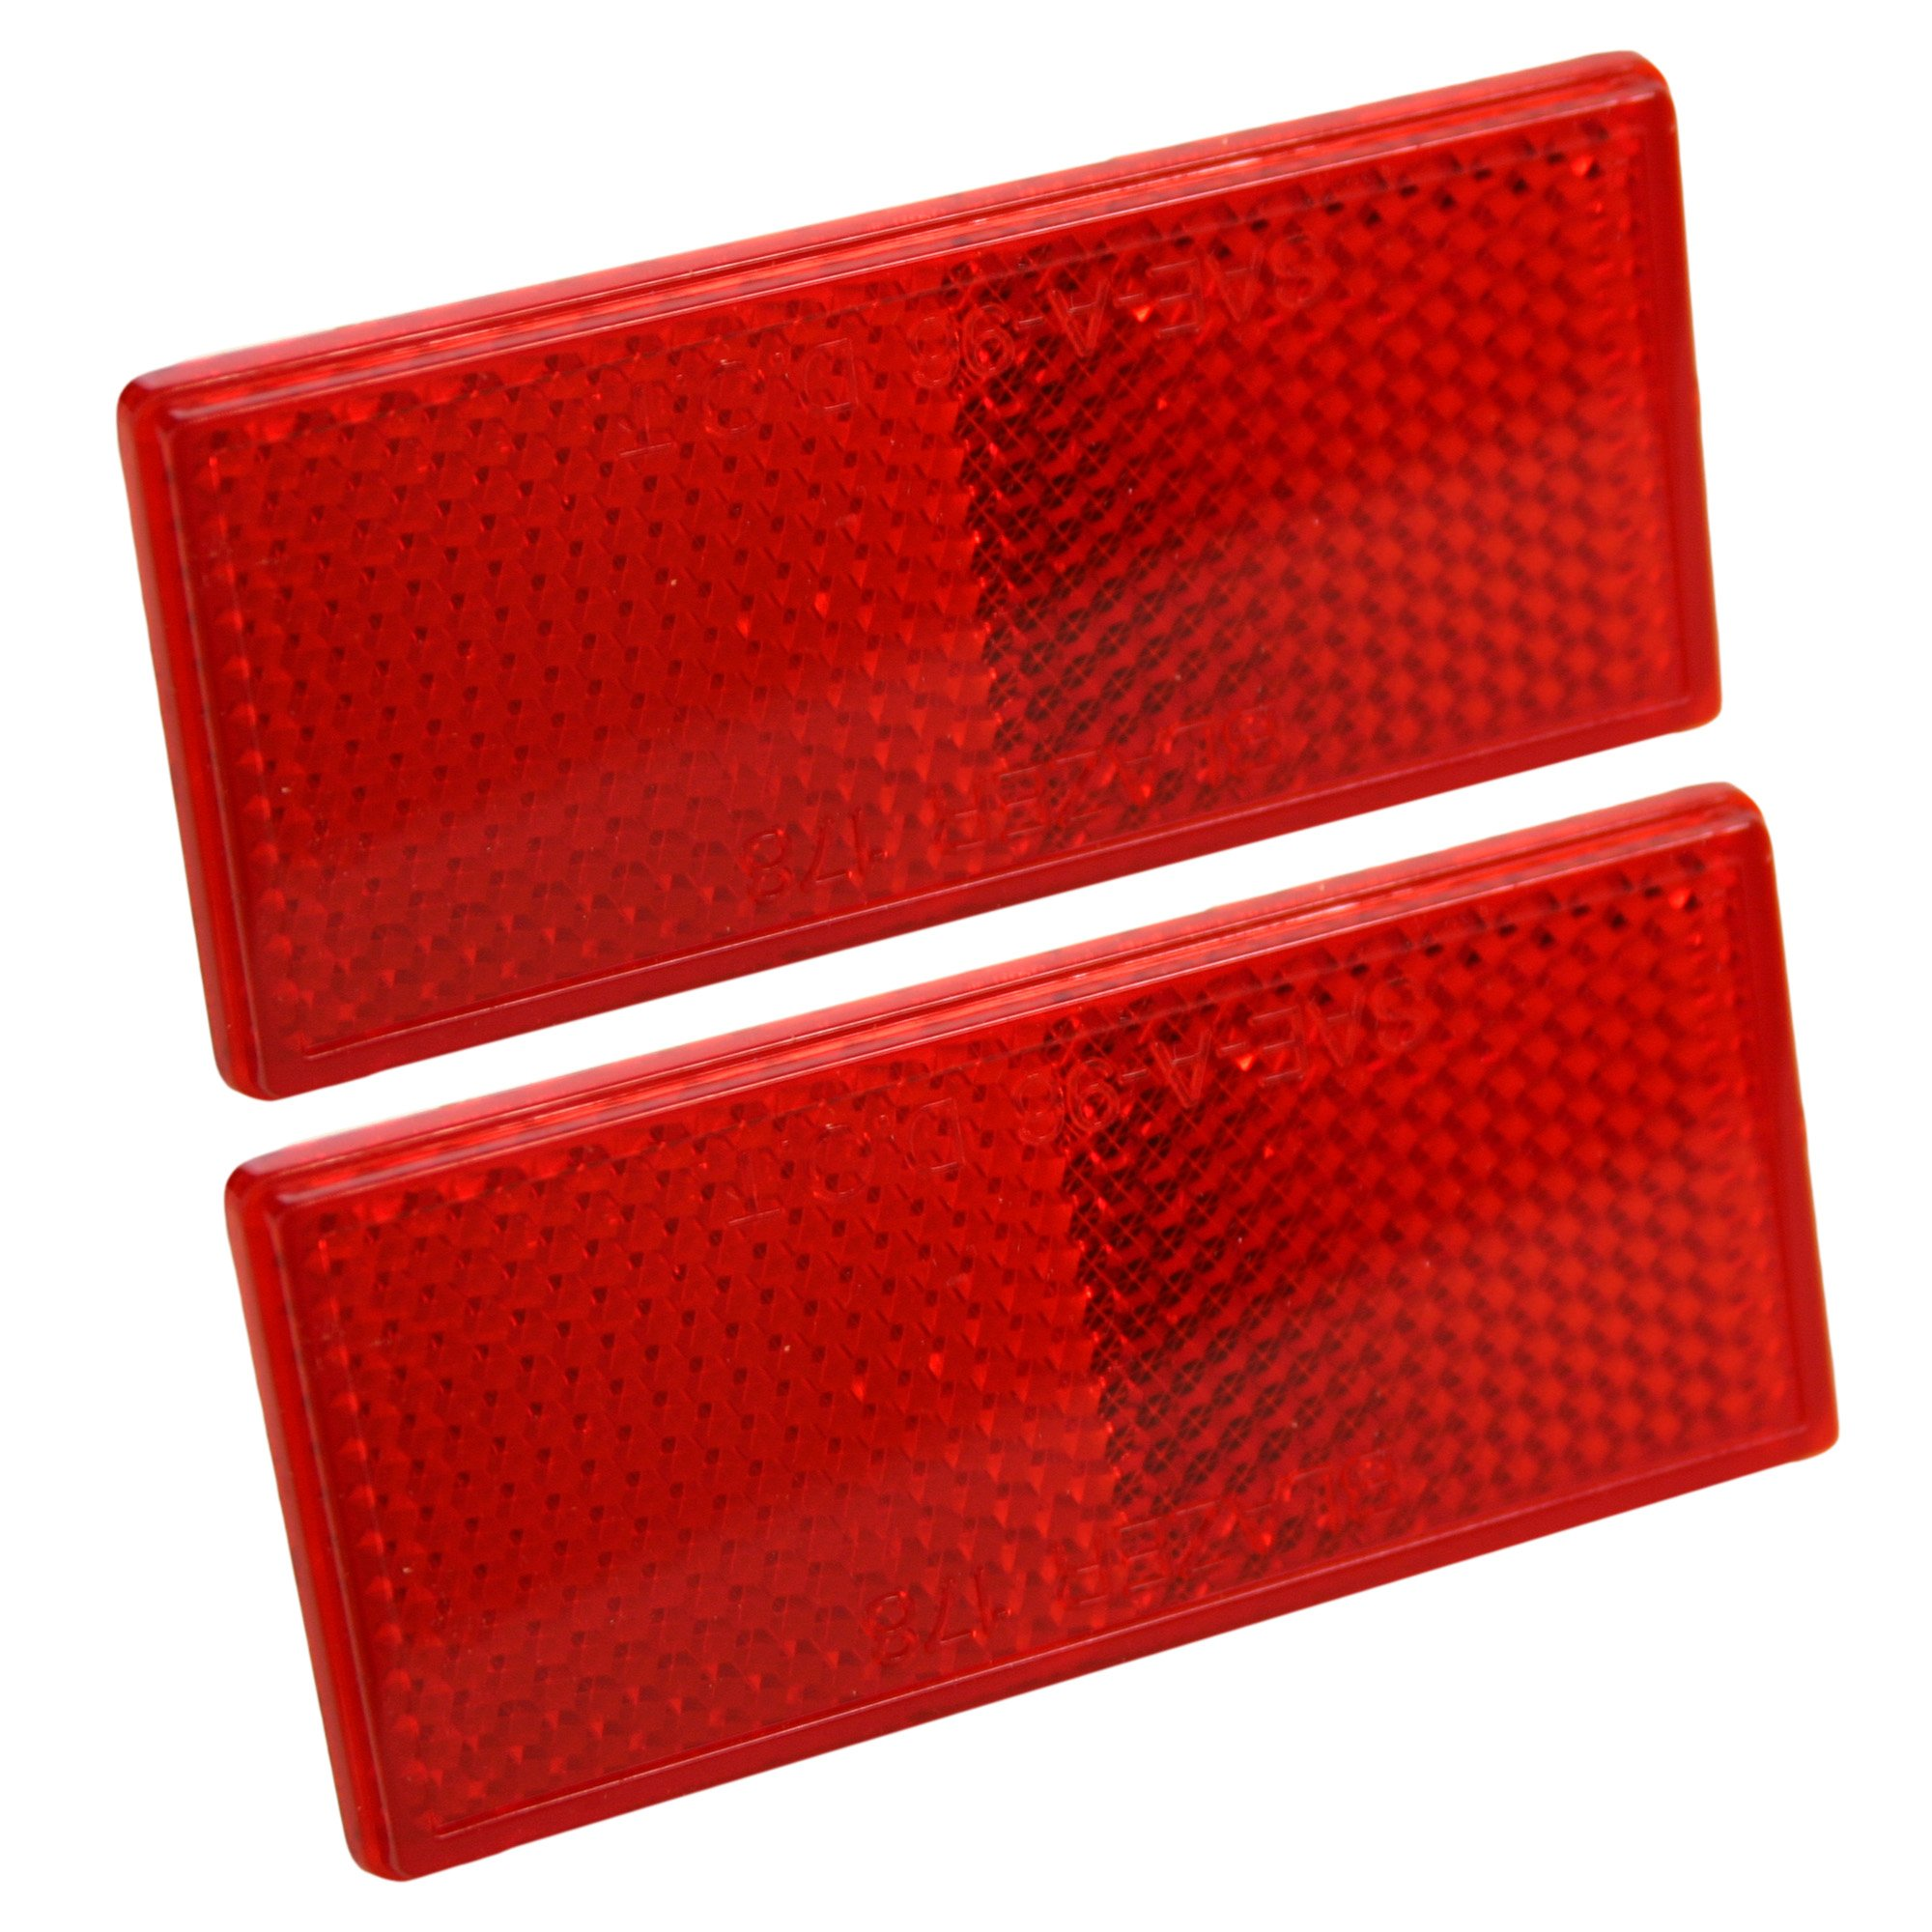 BSK 4.5 Red Quick Mount Oval Reflectors,2 Pack Red